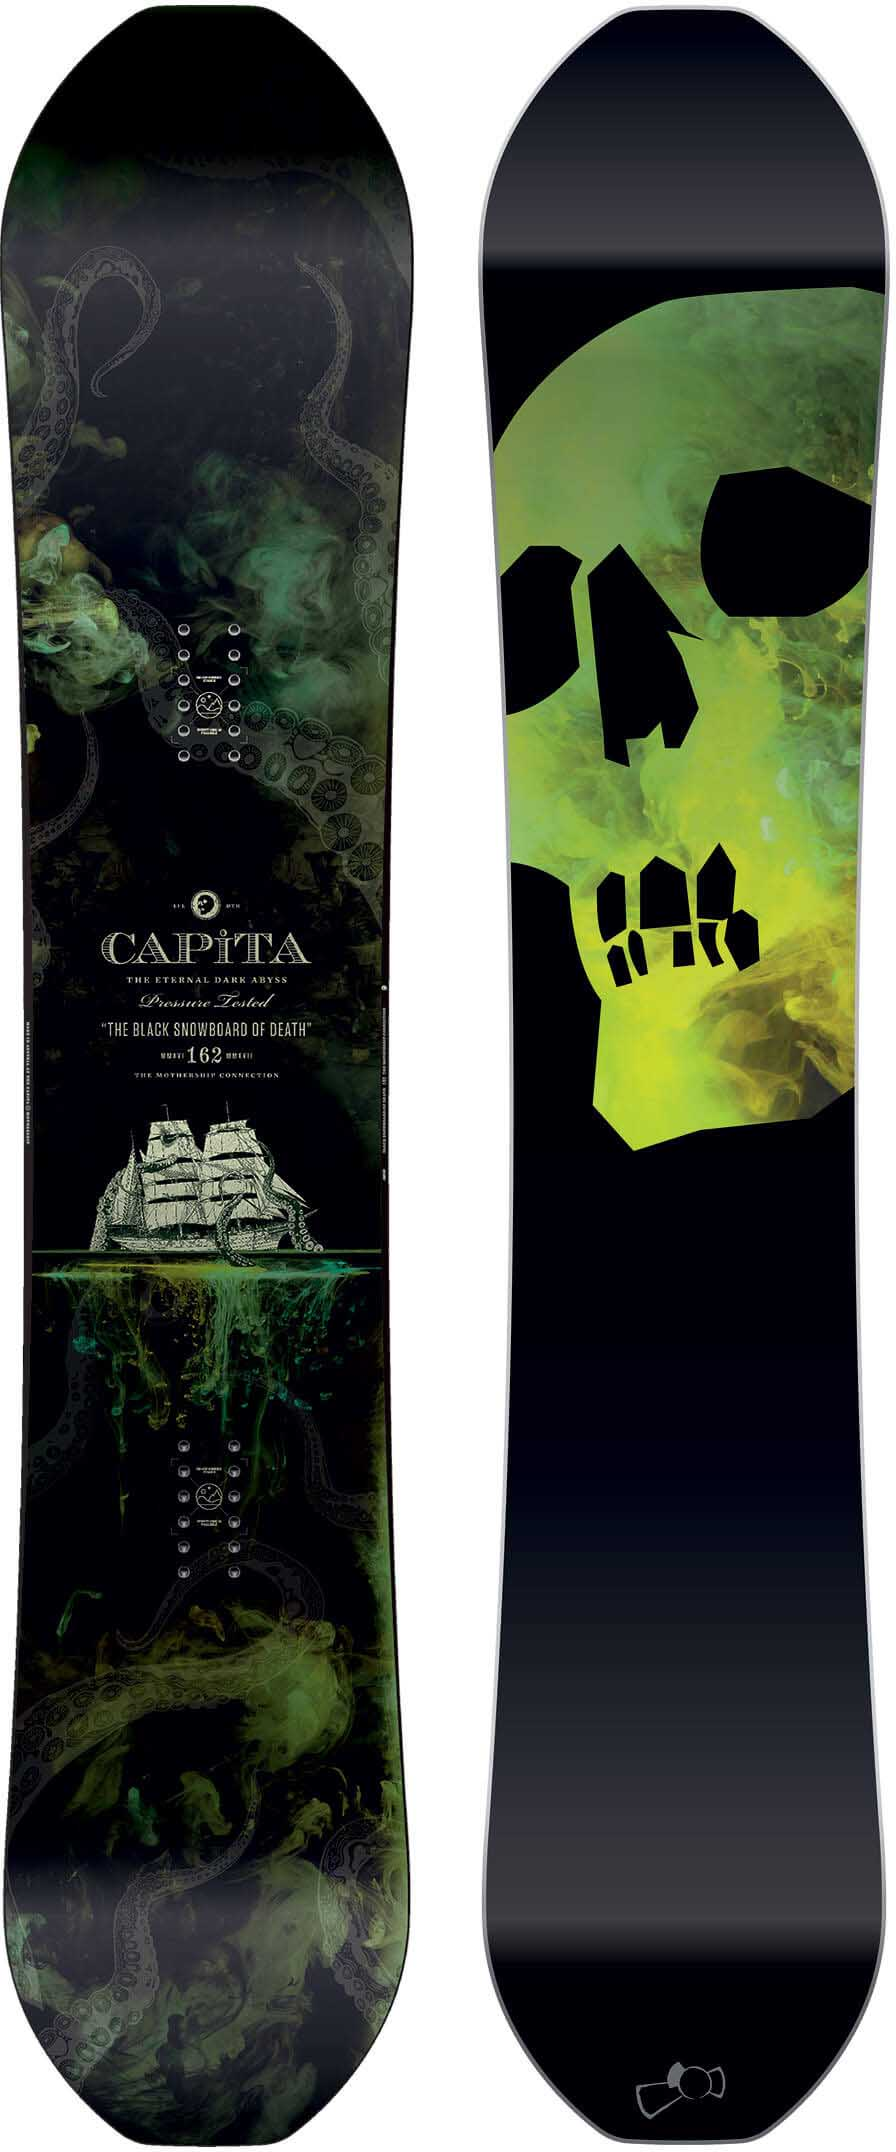 image capita-black-snowboard-of-death-163-jpg